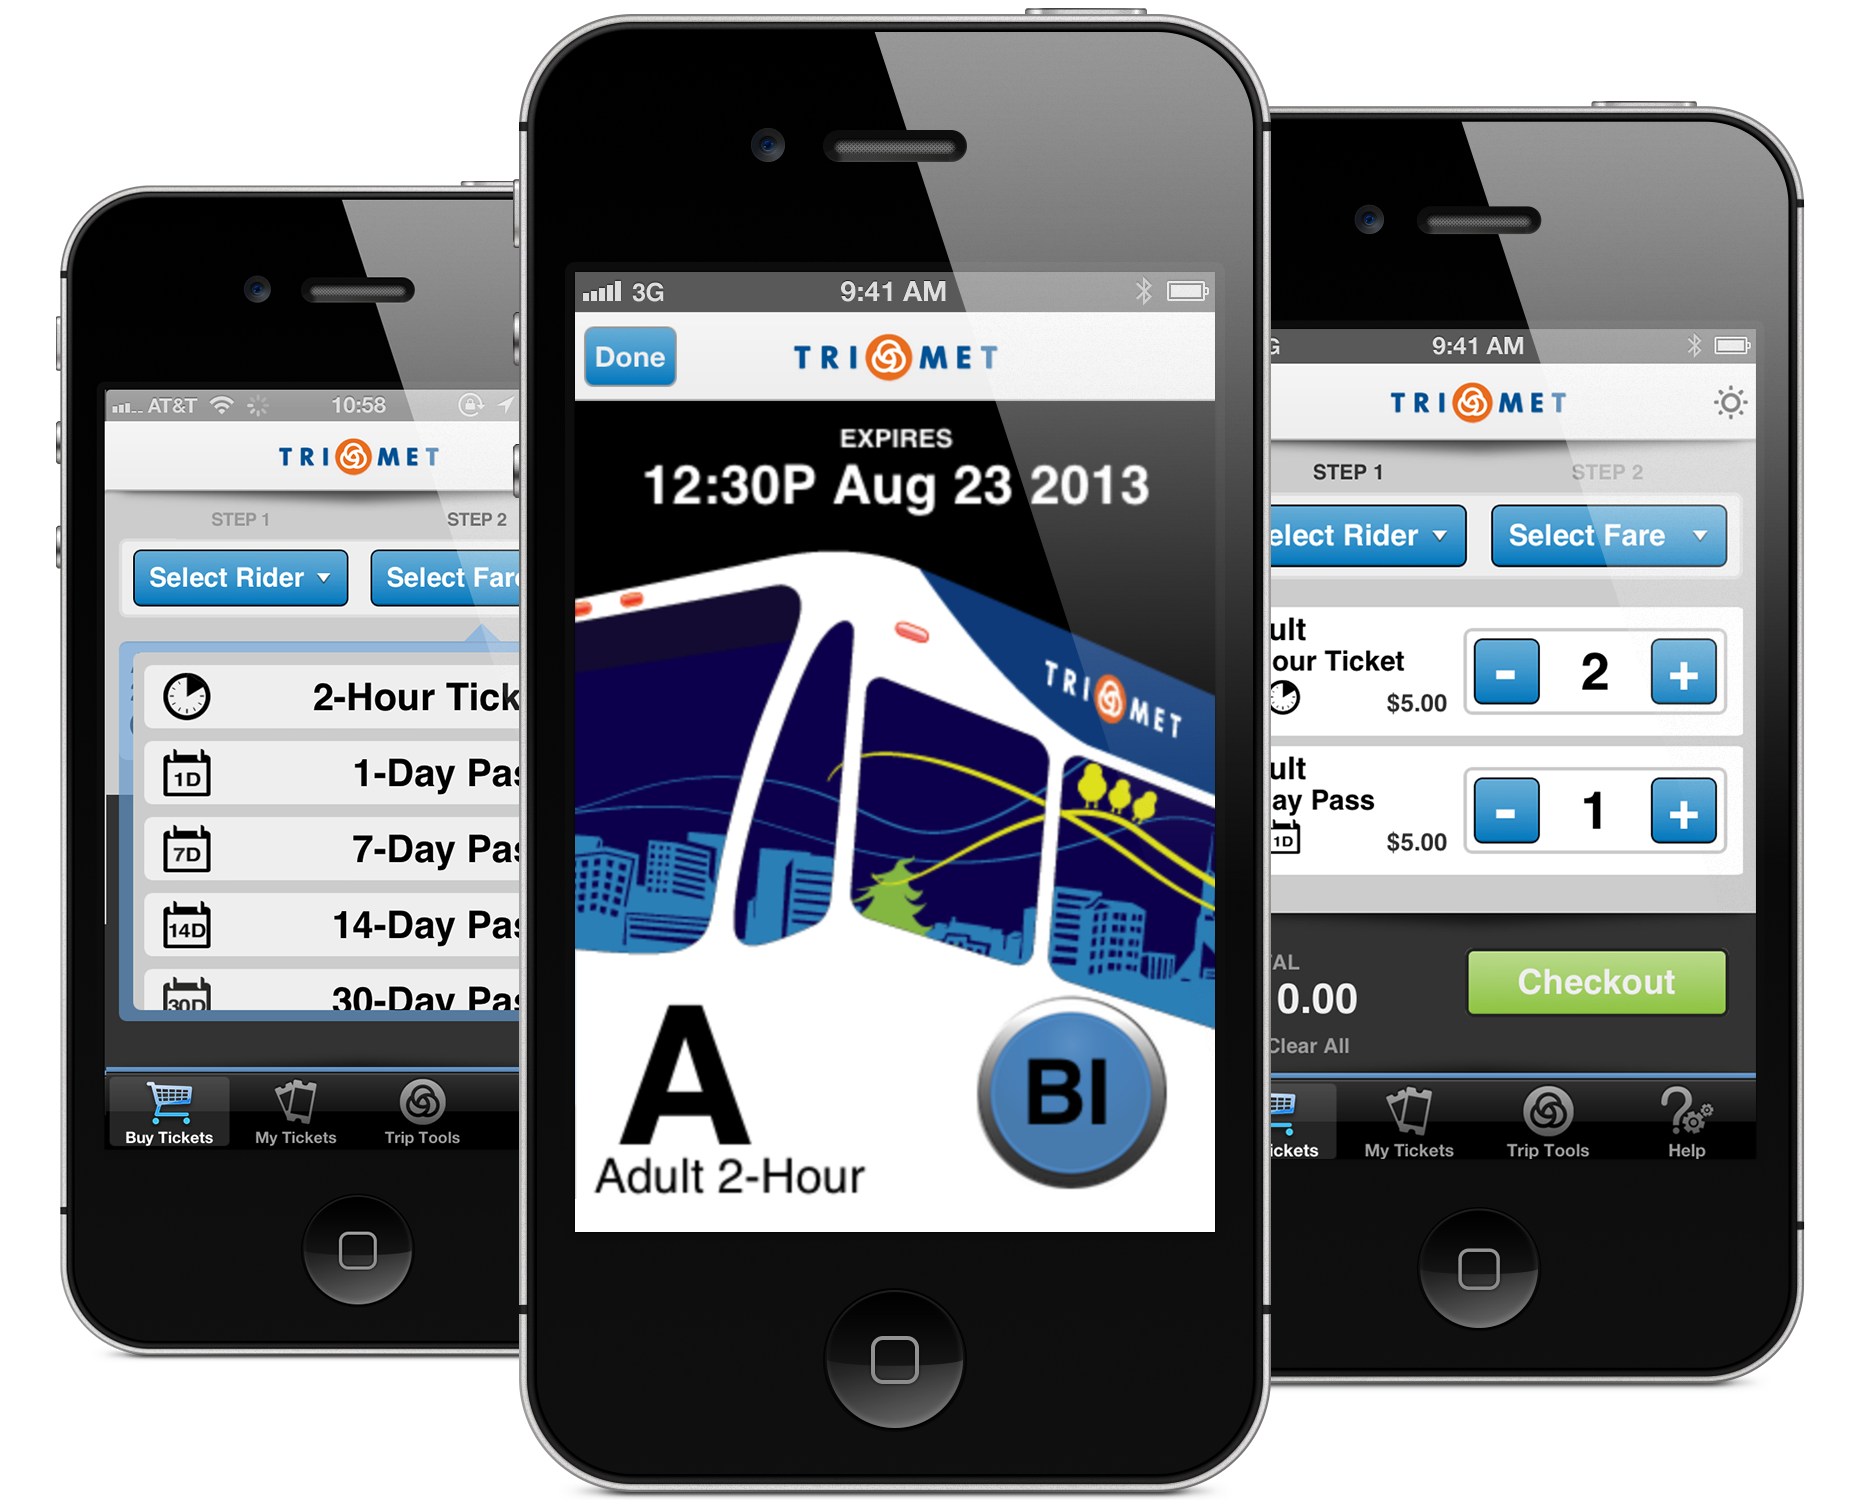 Mobile ticketing service application in public